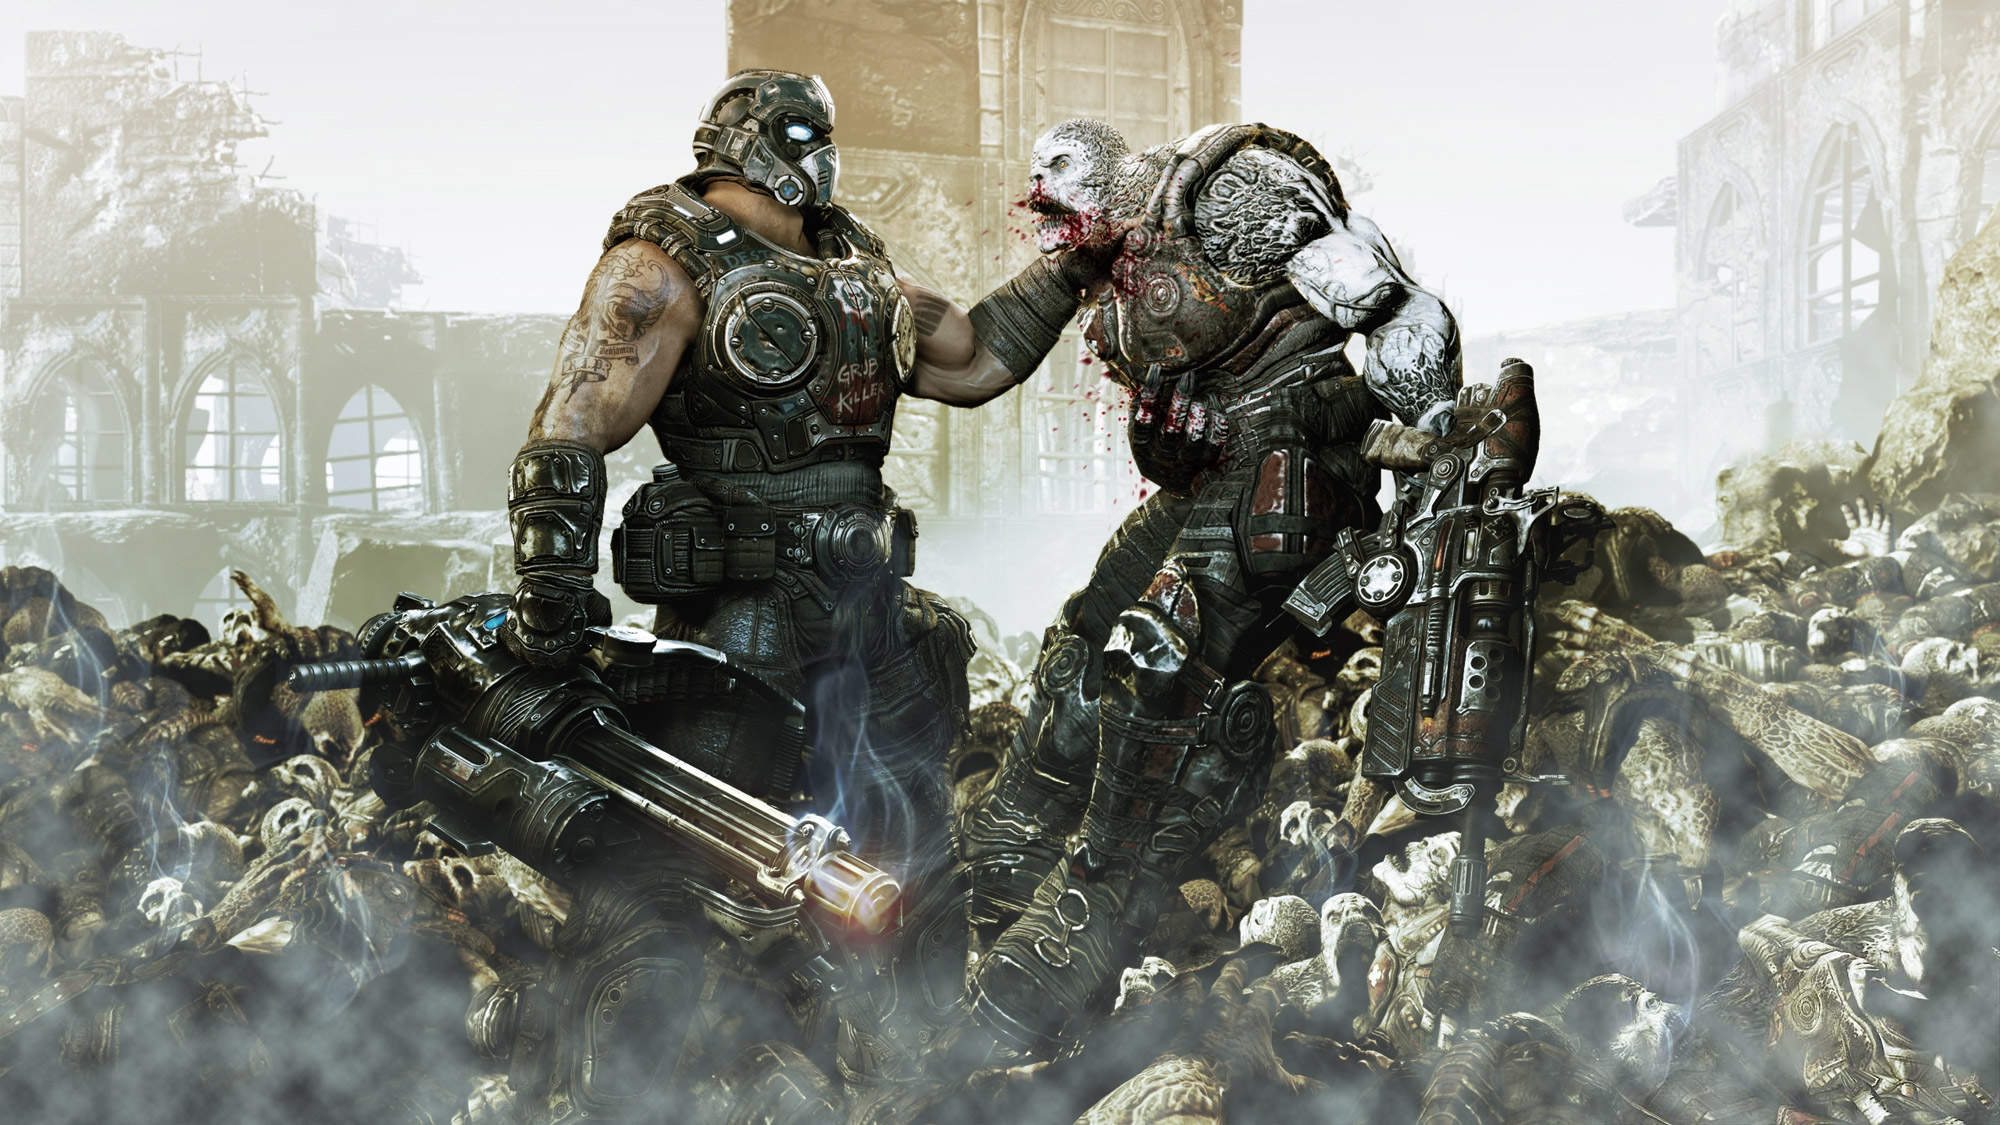 Gears-of-War-3-Gameplay